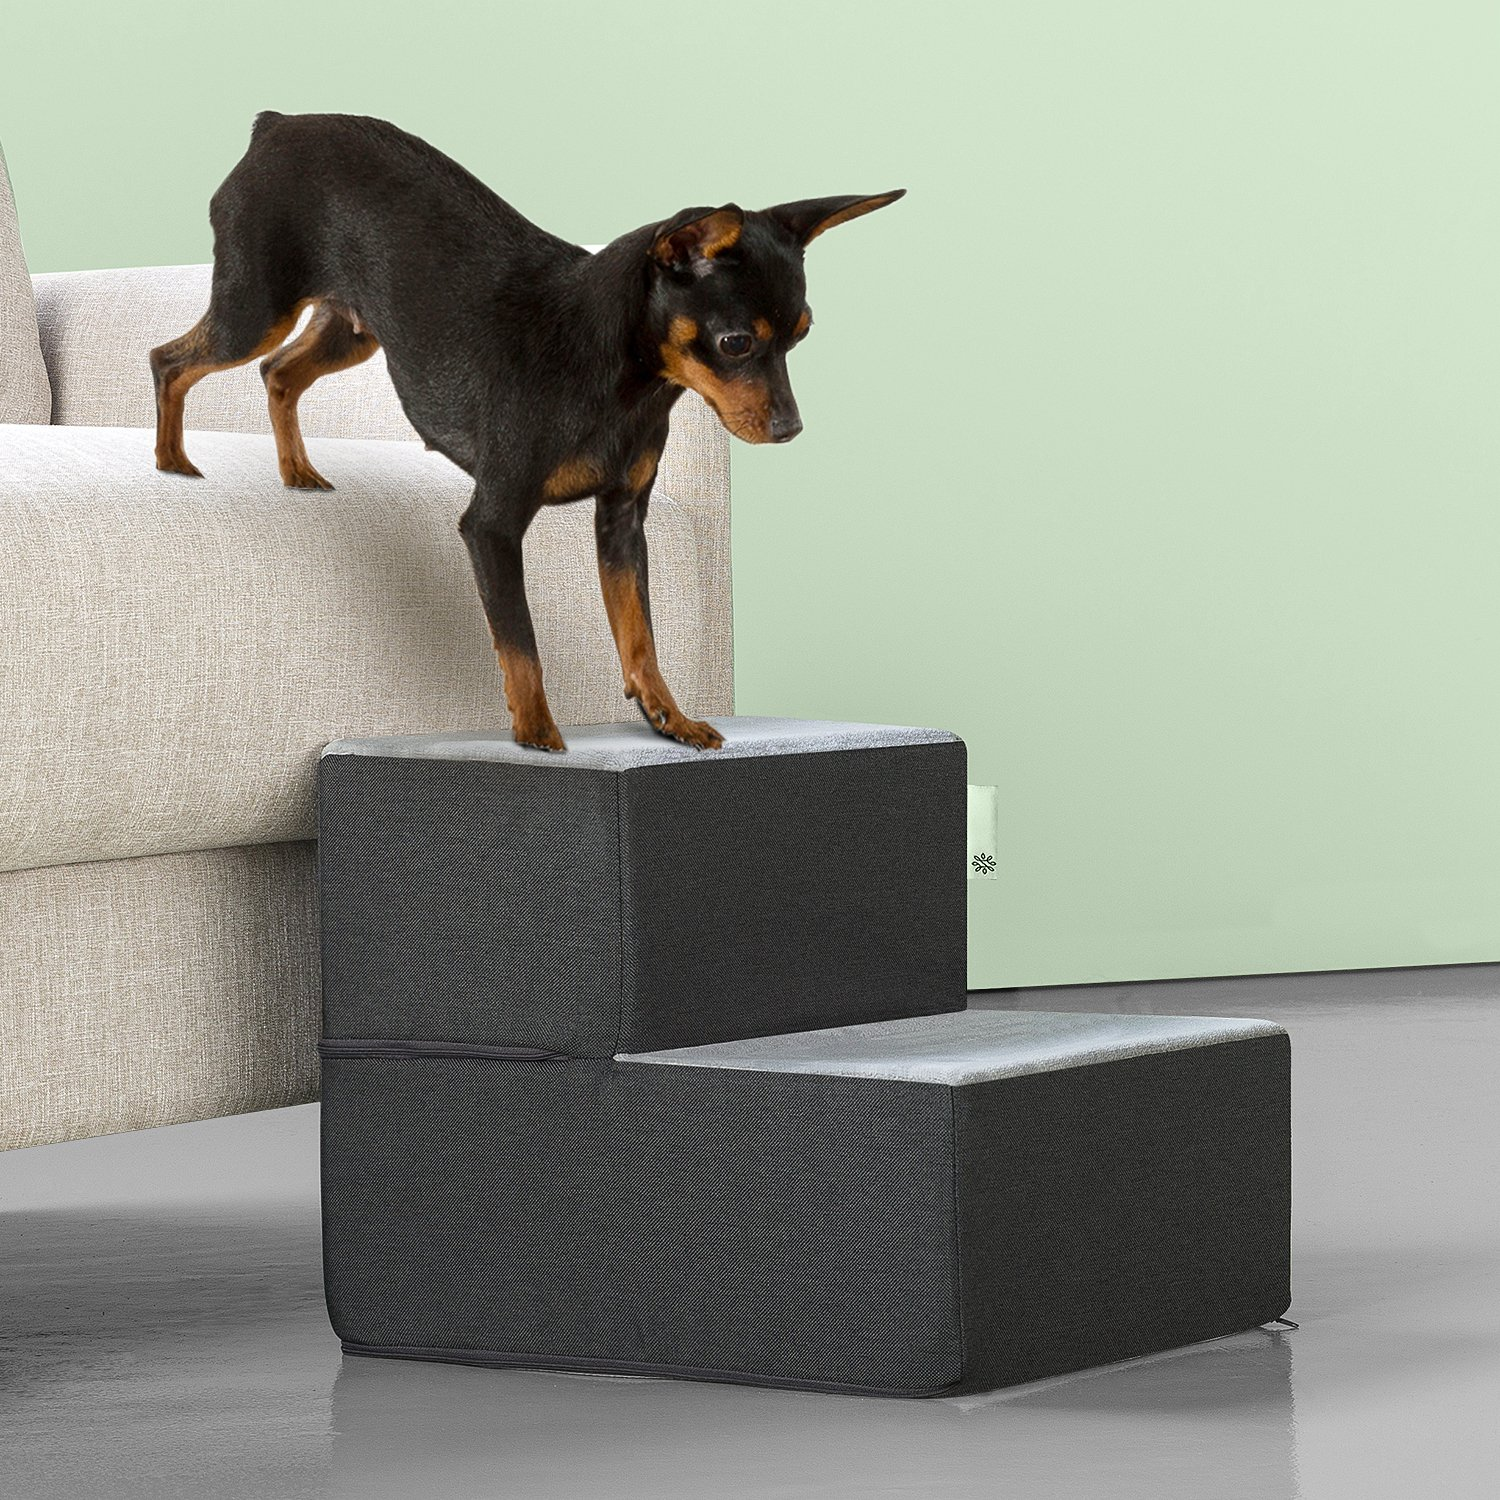 Zinus Easy Pet Stairs/Pet Ramp/Pet Ladder, X-small, Grey by Zinus (Image #1)